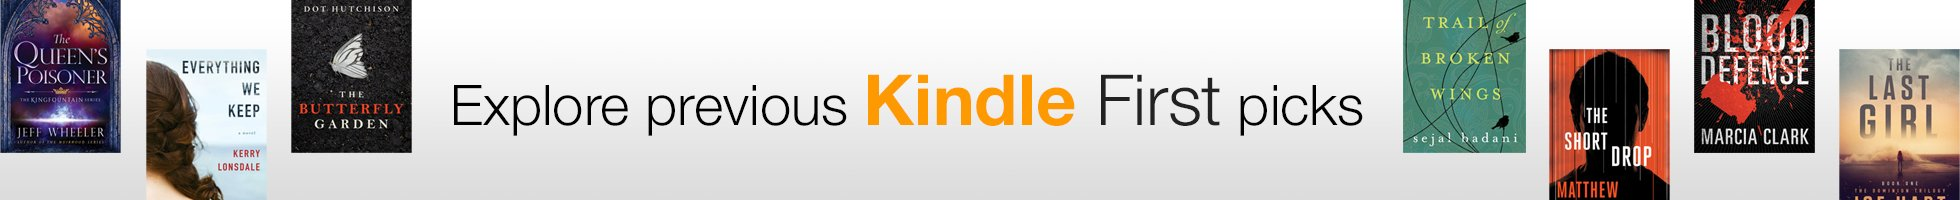 Explore previous Kindle First picks